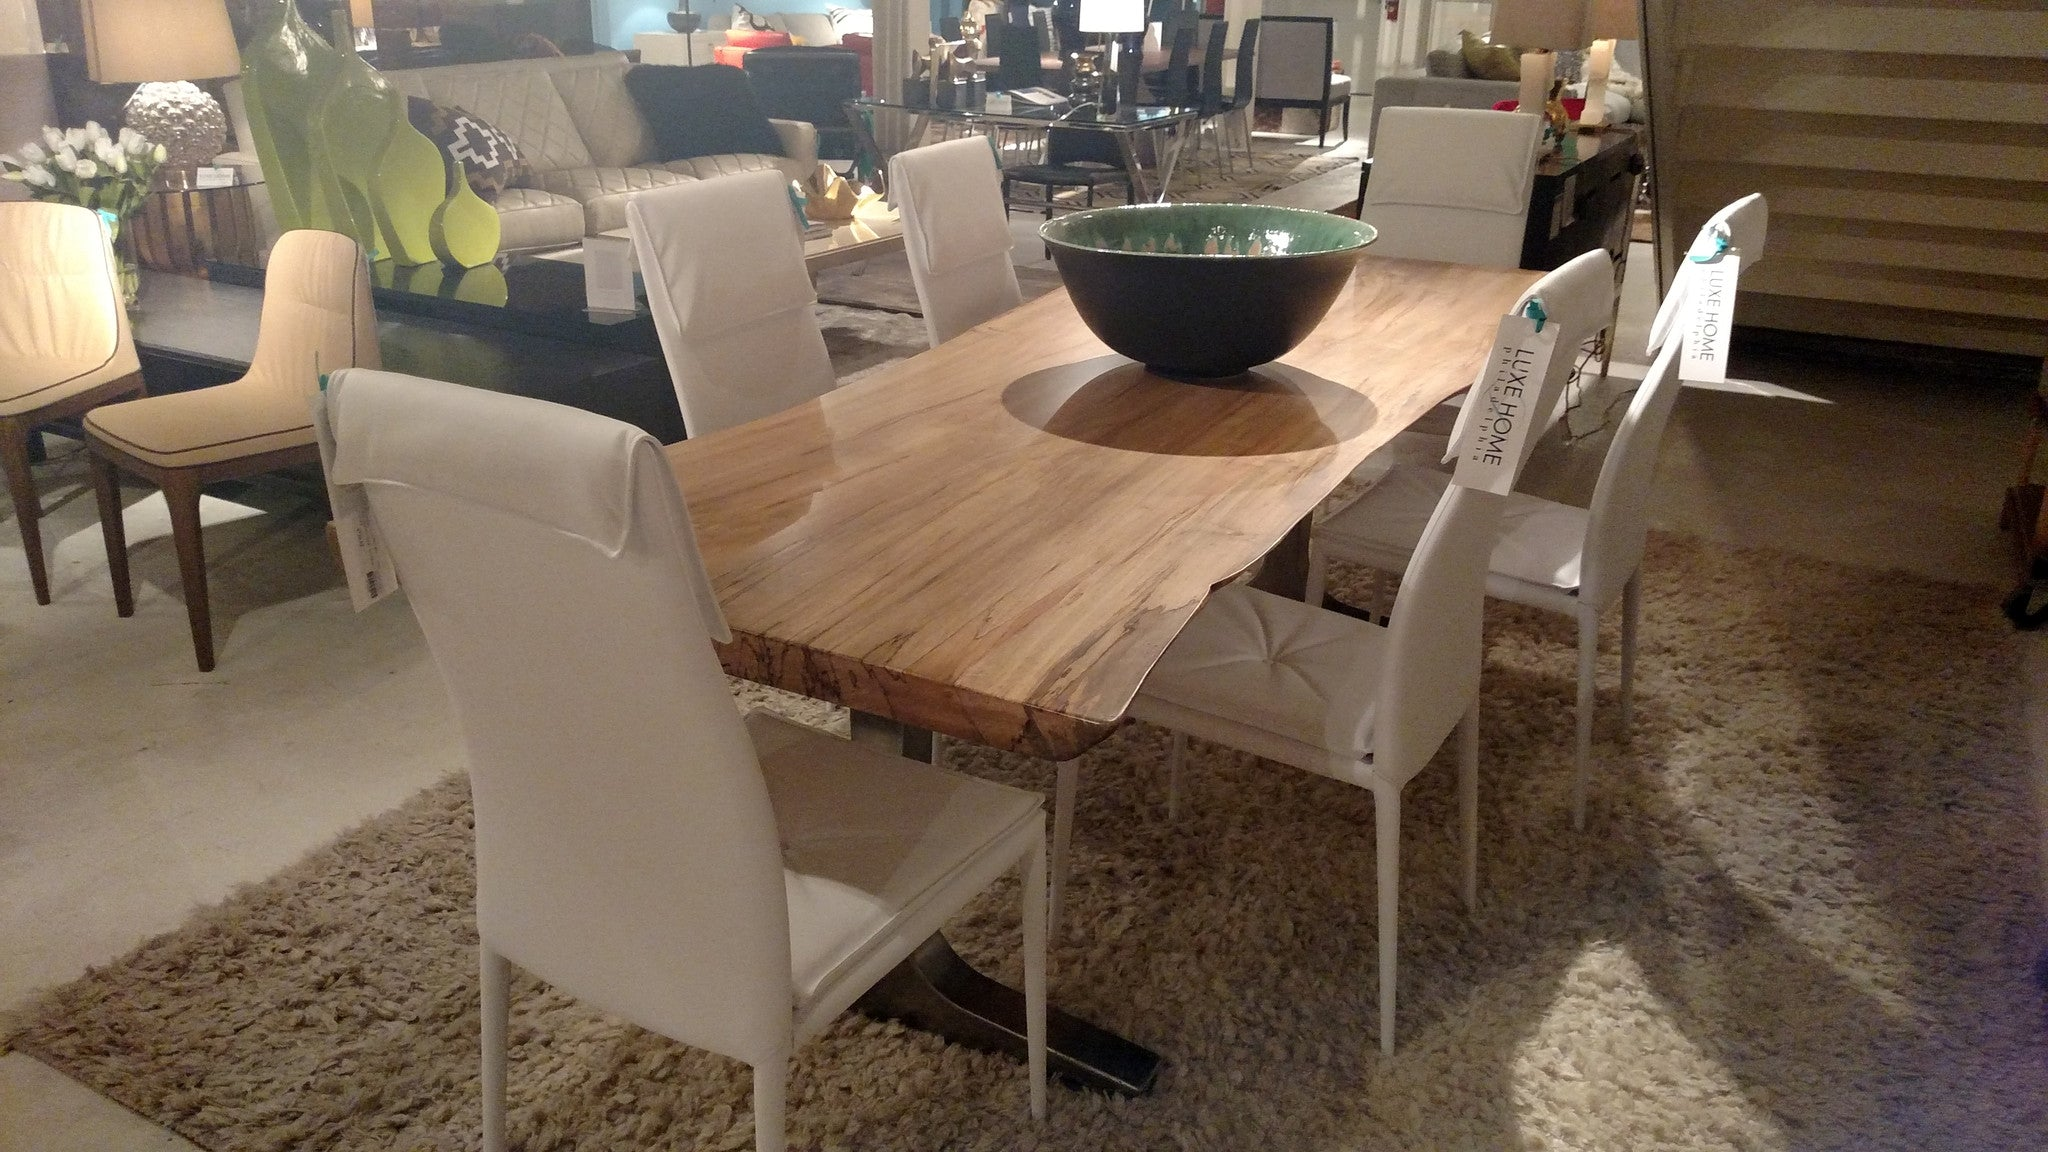 Spalted Maple Live Edge Slab With Stainless Steel Base Dining